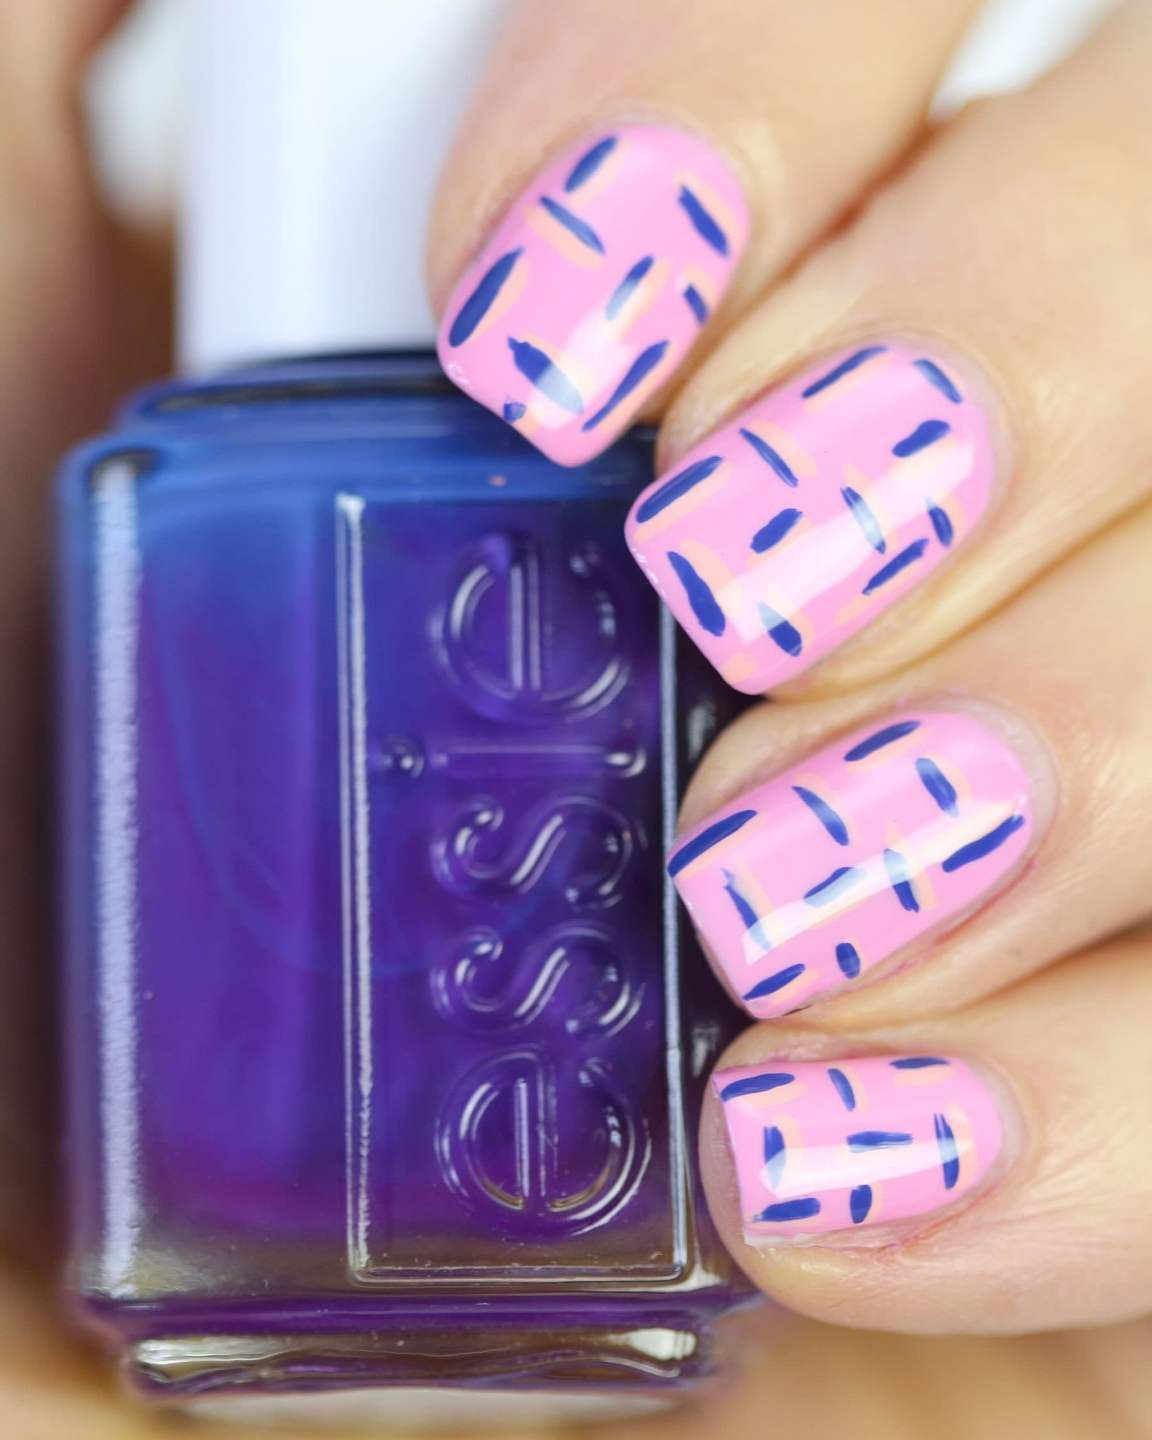 Buy Haircolorful and Beauty polka dot nail art picture trends